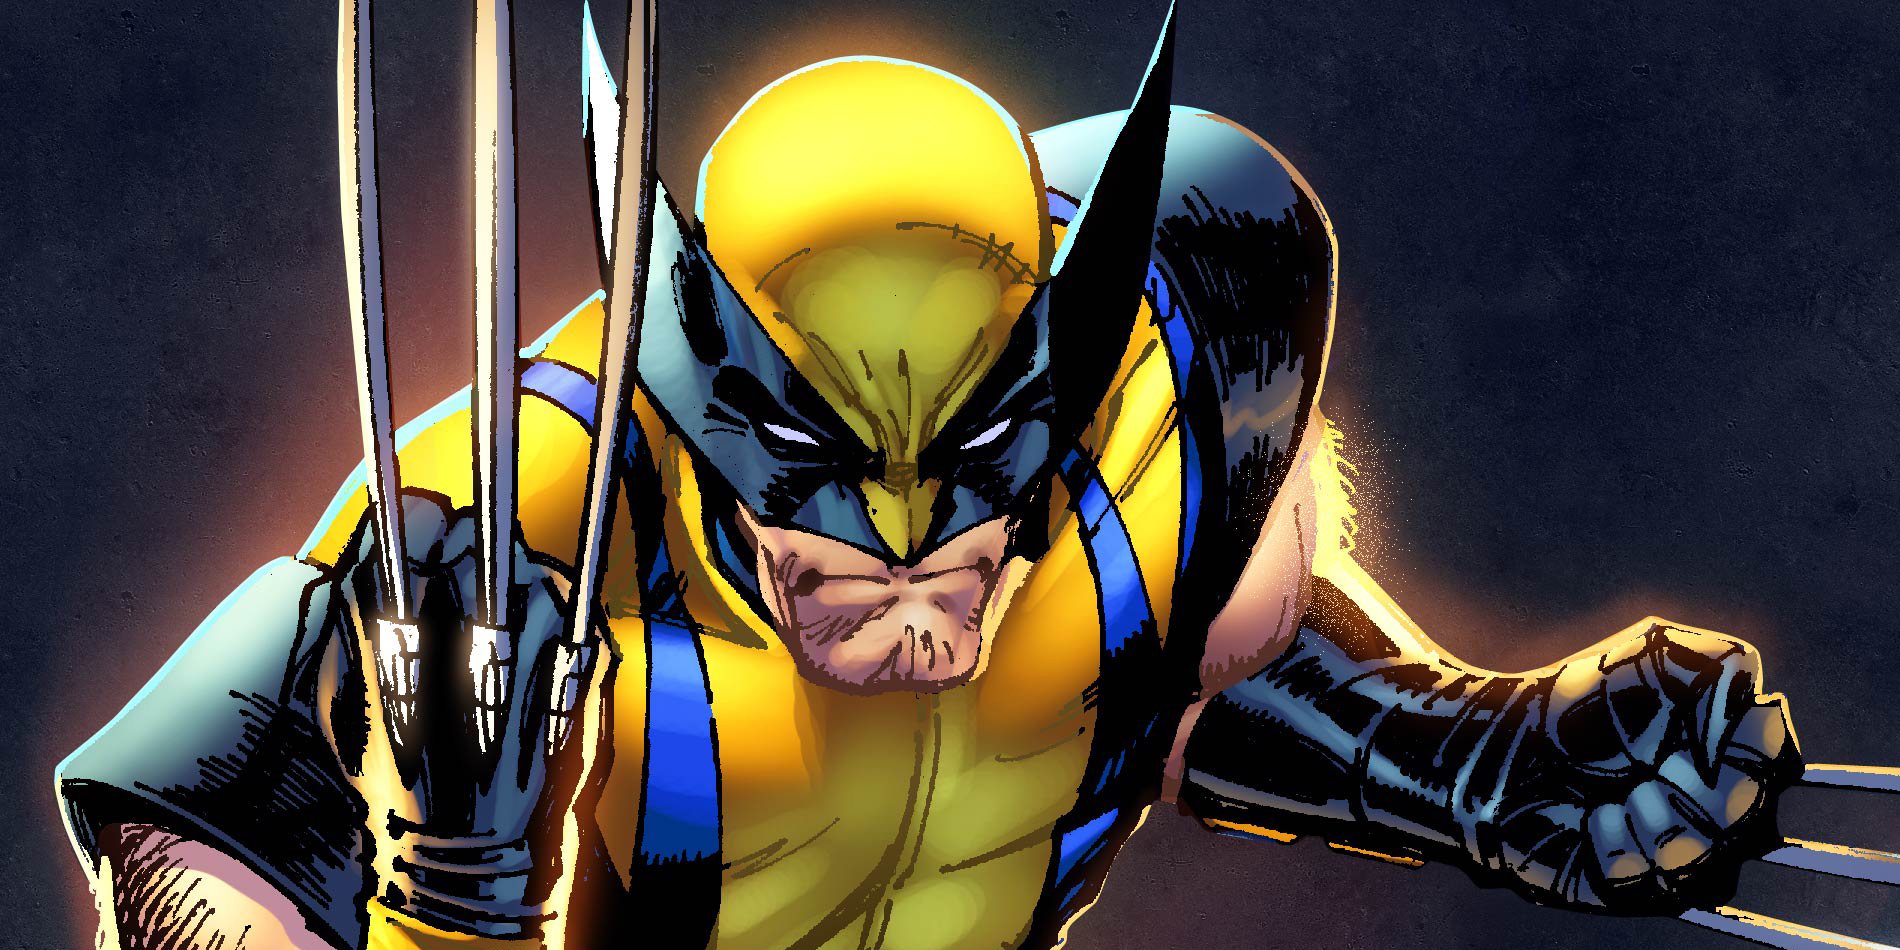 20 Facts You Never Knew About Wolverine Of The X-Men